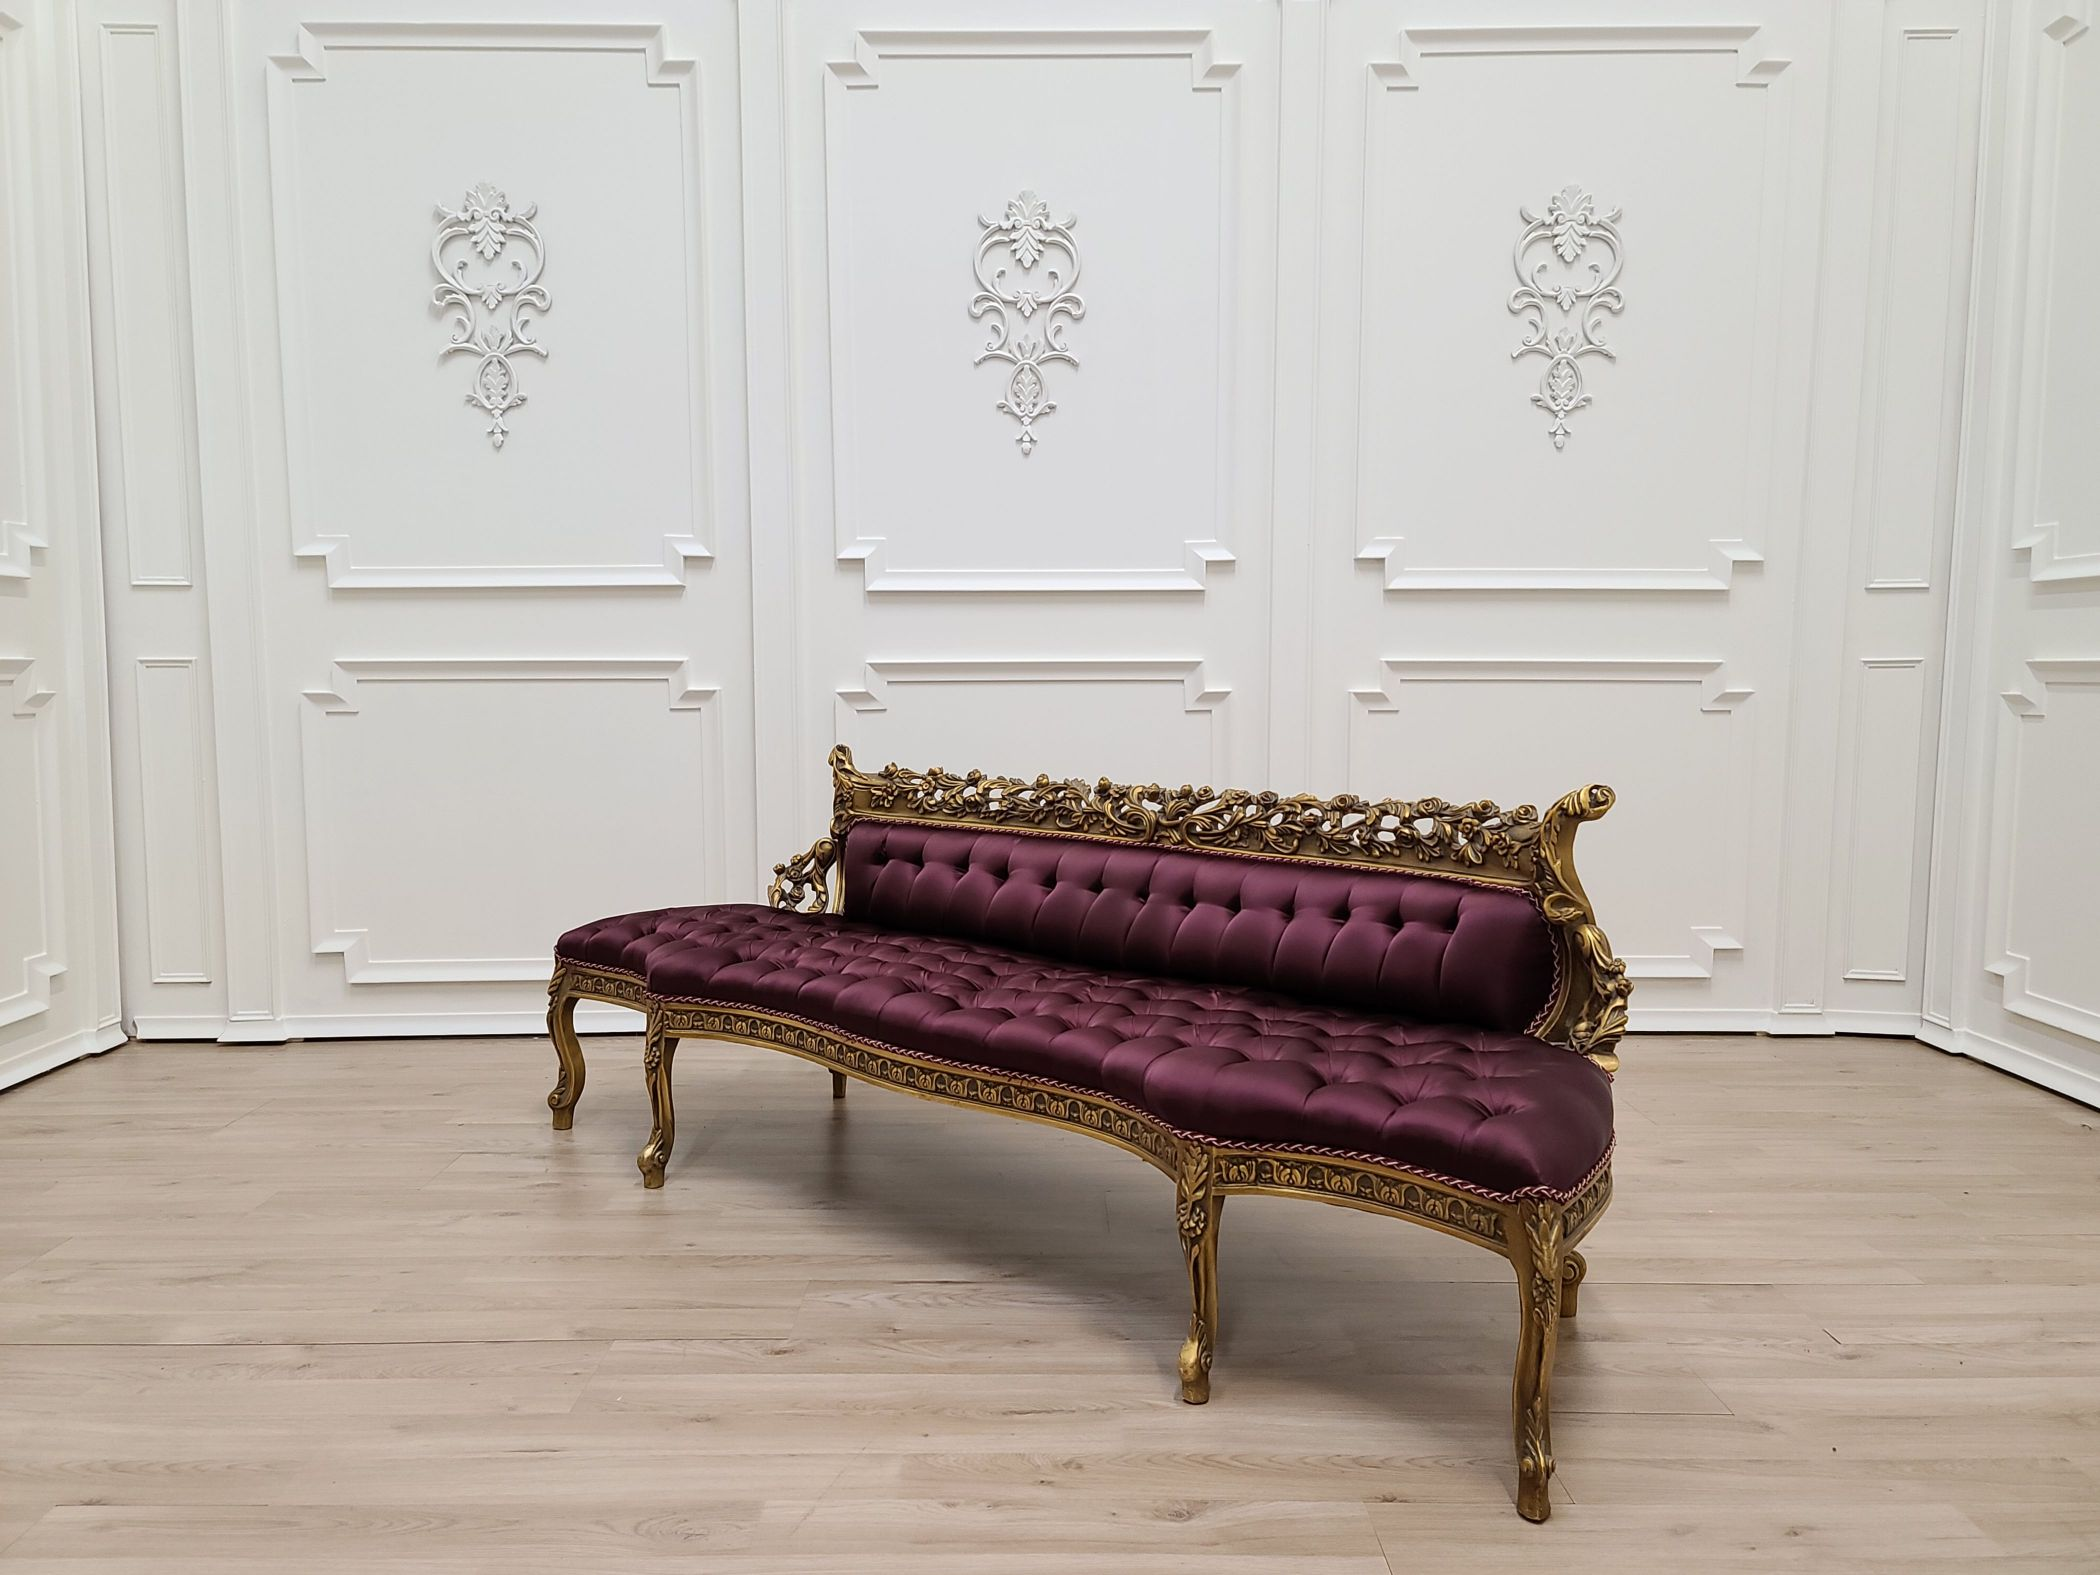 MADE TO ORDER / French Settee/ 24k Aged Gold Leaf and Hand Carved Wood Frame/ Tufted Maroon Satin Fabric